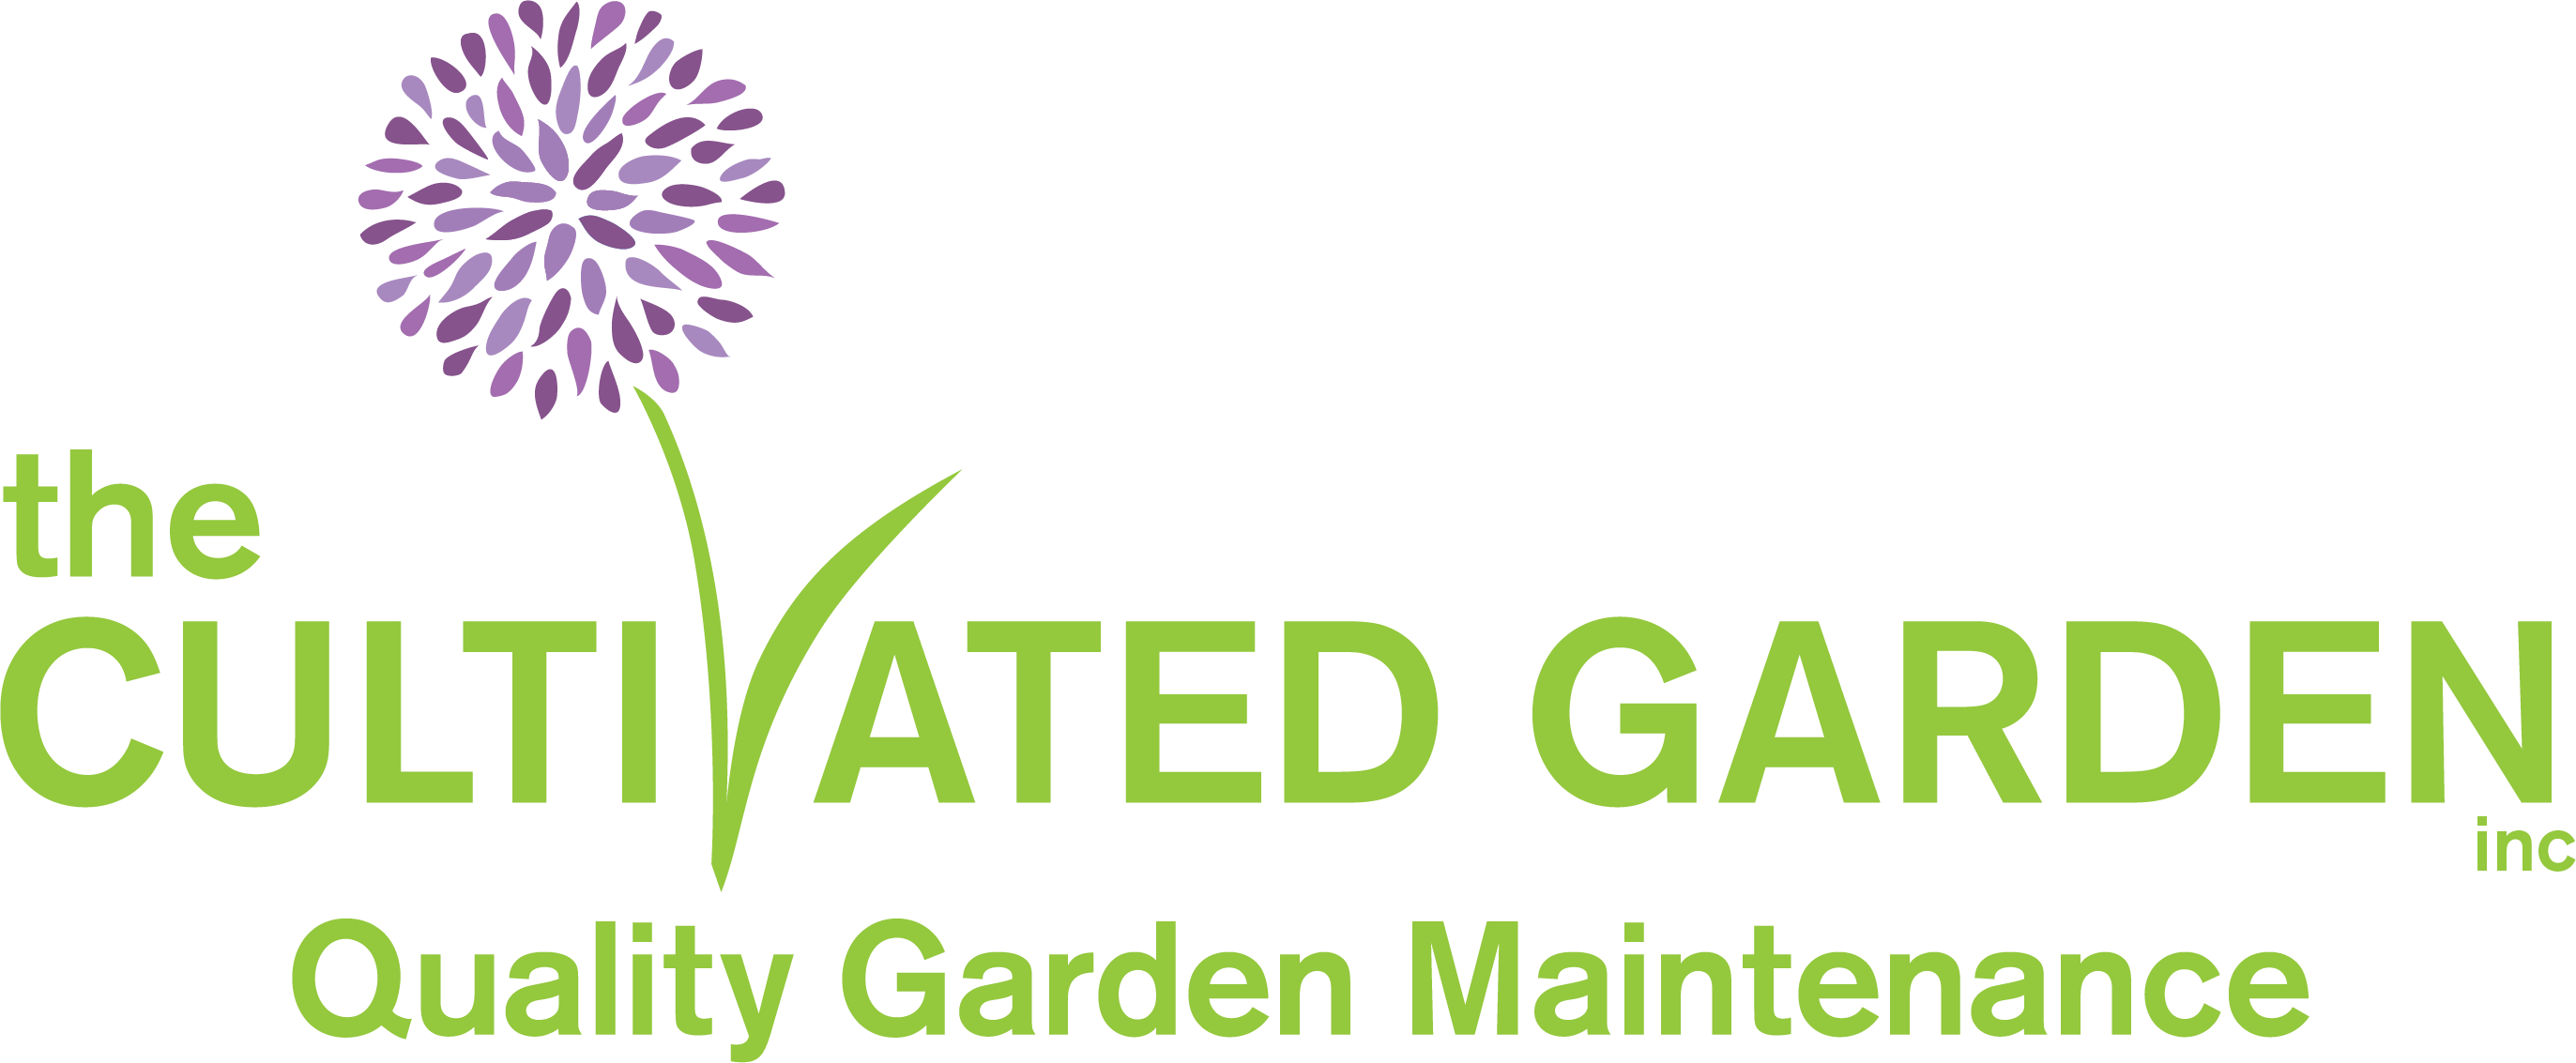 The Cultivated Garden